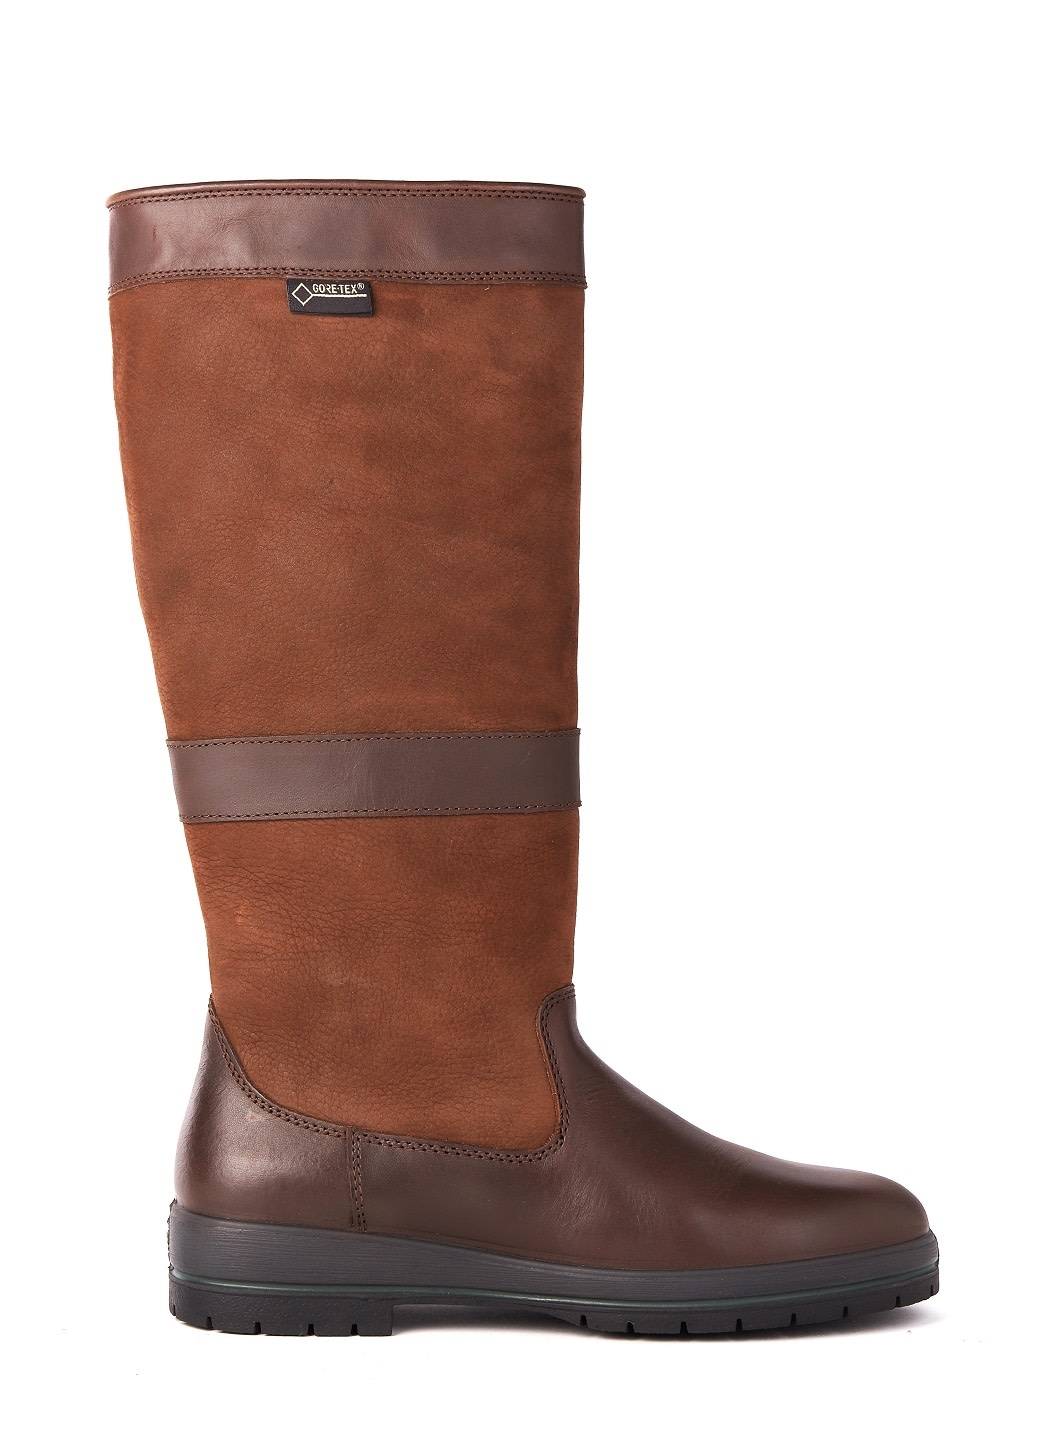 Dubarry Tipperary - Walnut-4